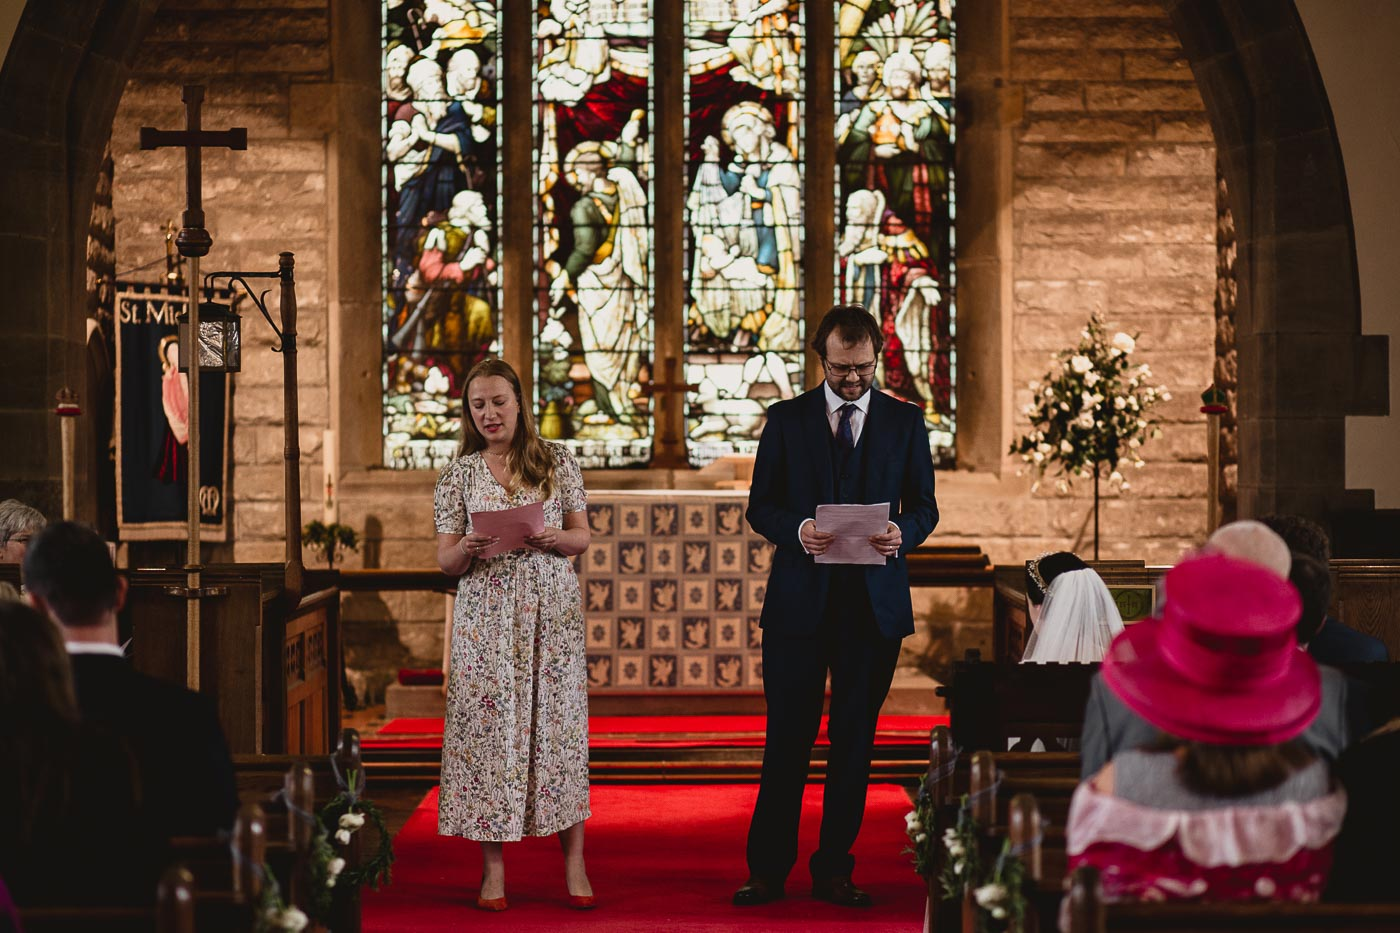 Wedding guests giving readings at the front of church, Ribble valley wedding